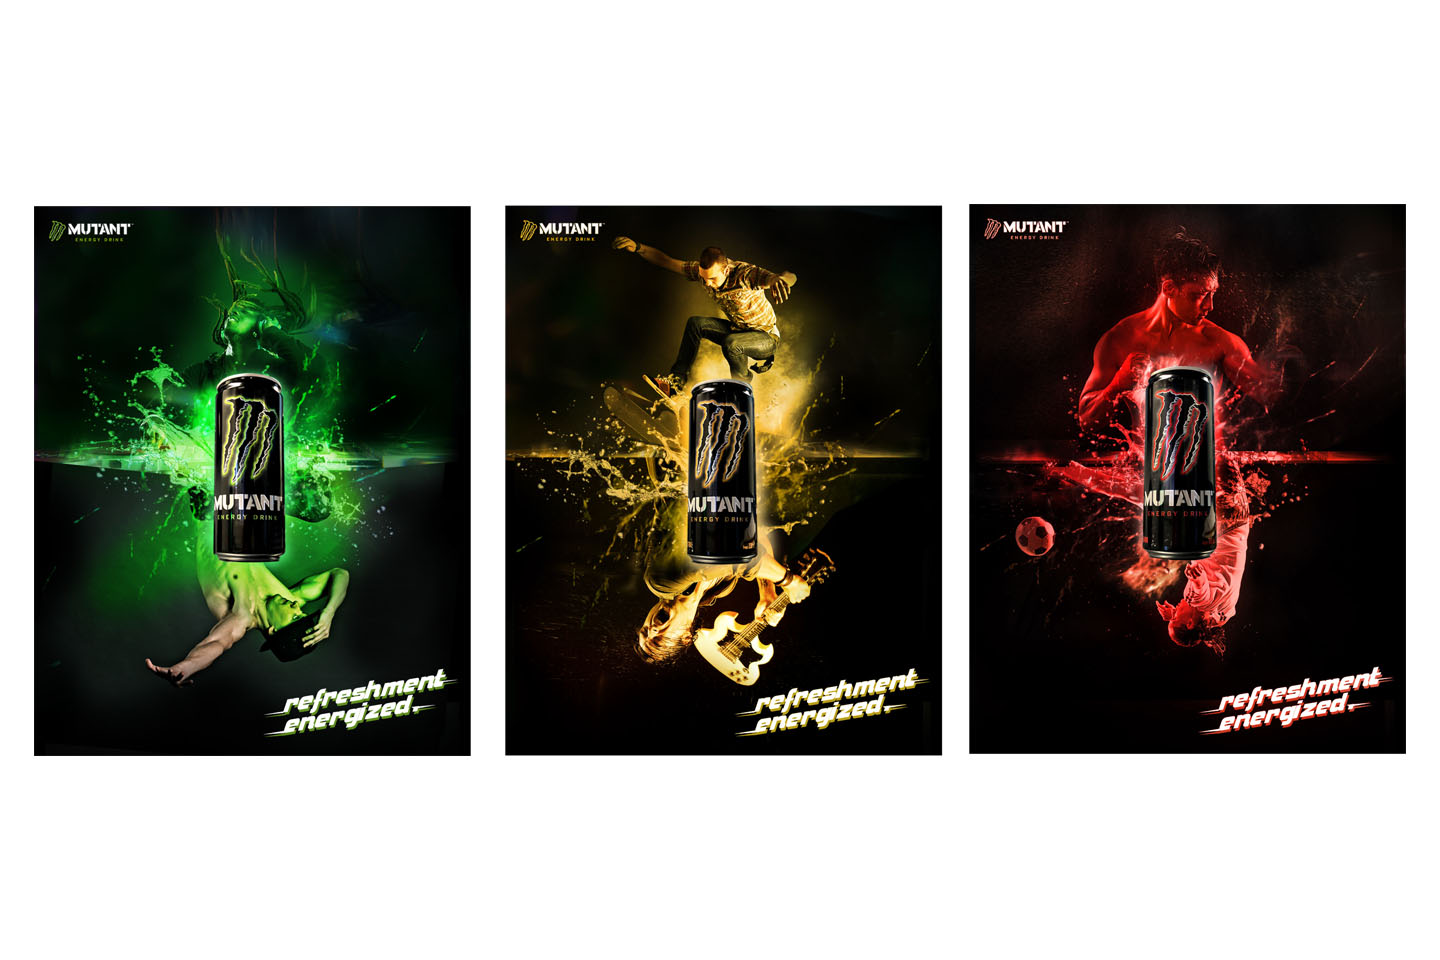 Mutant Energy campaign to promote brand in Cambodia, Myanmar and Vietnam